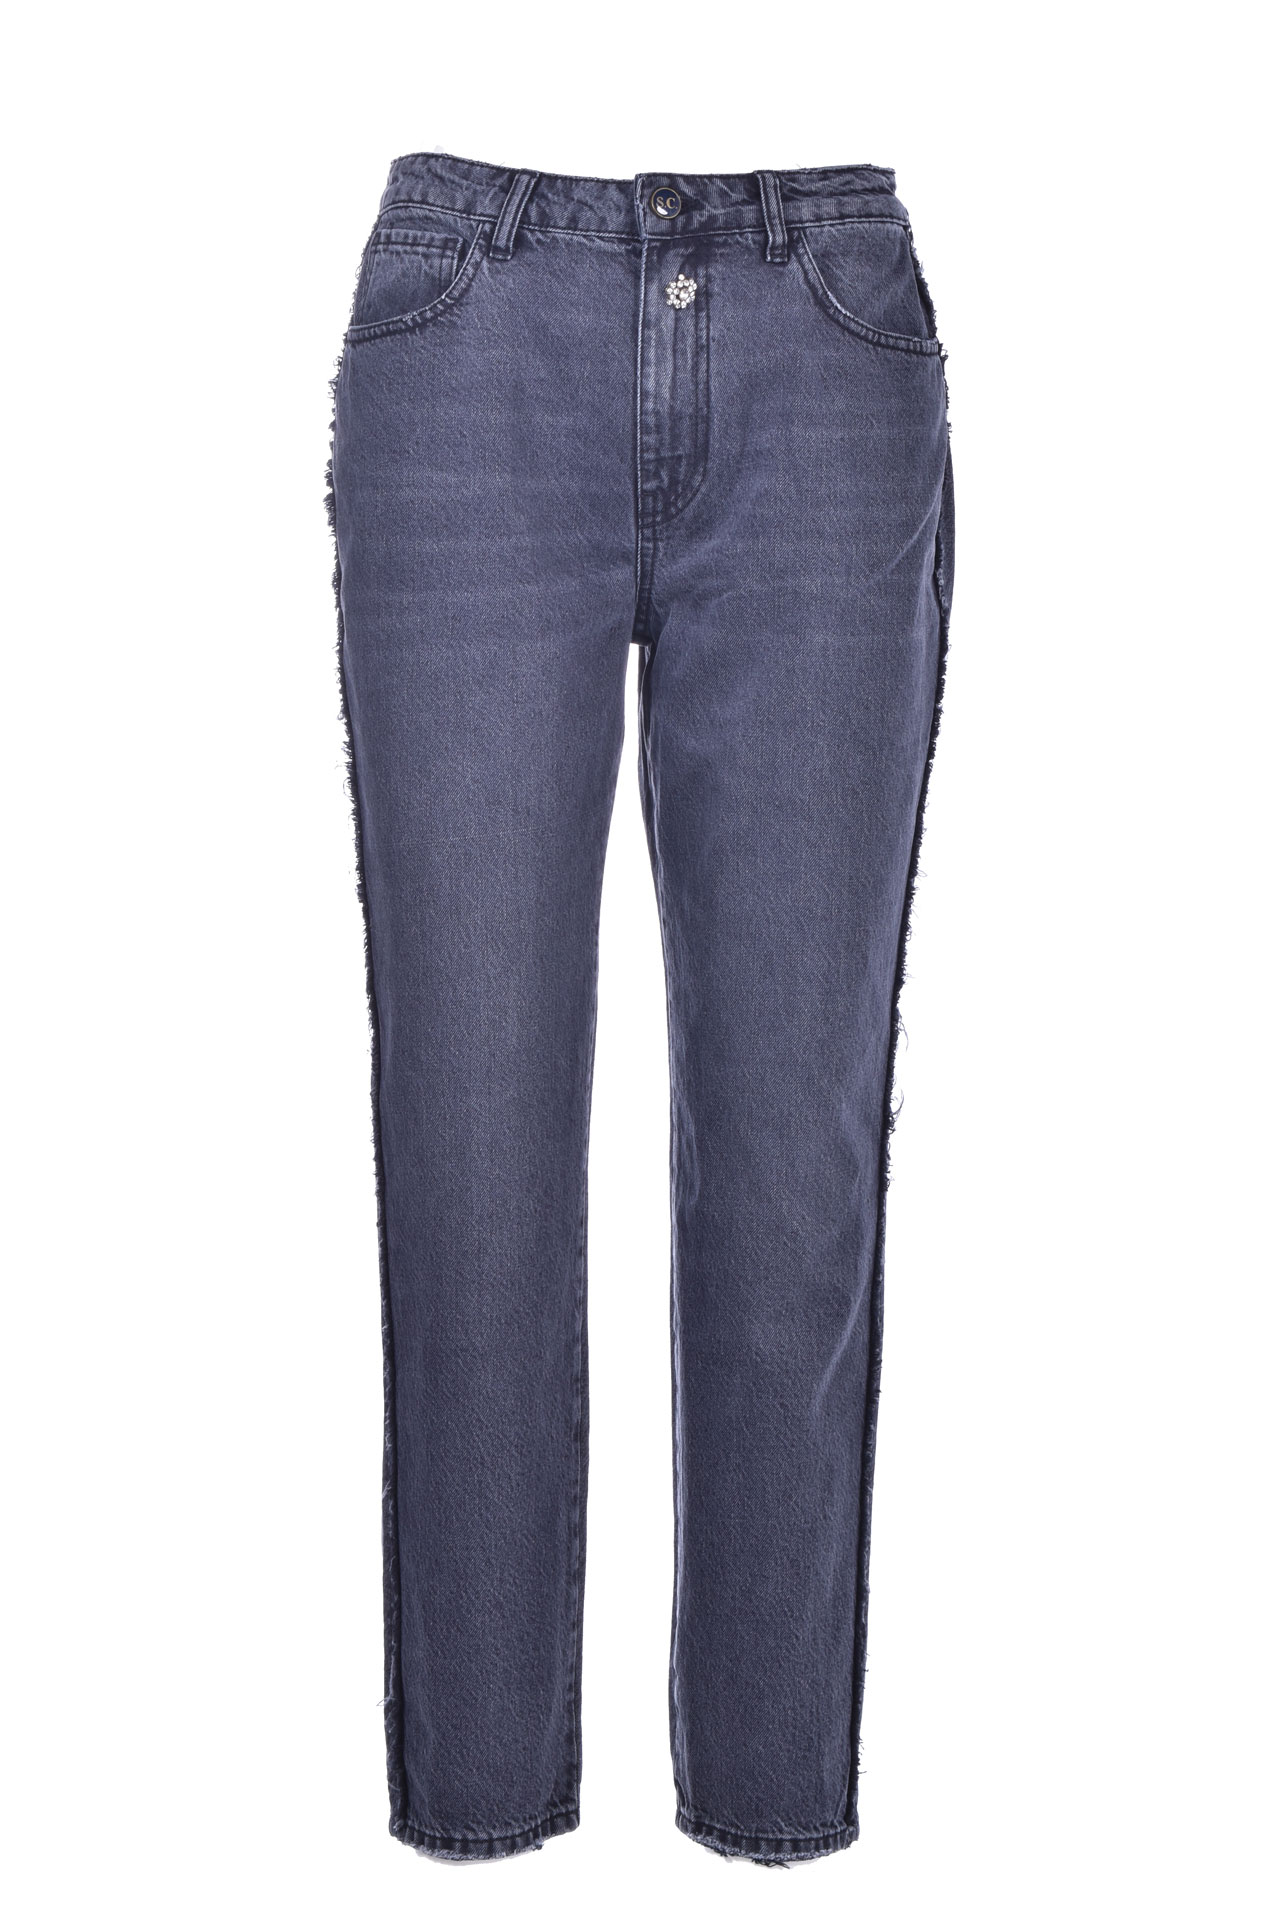 Cotton bull jeans with jewel SEMICOUTURE | Jeans | Y0WY05JNS17